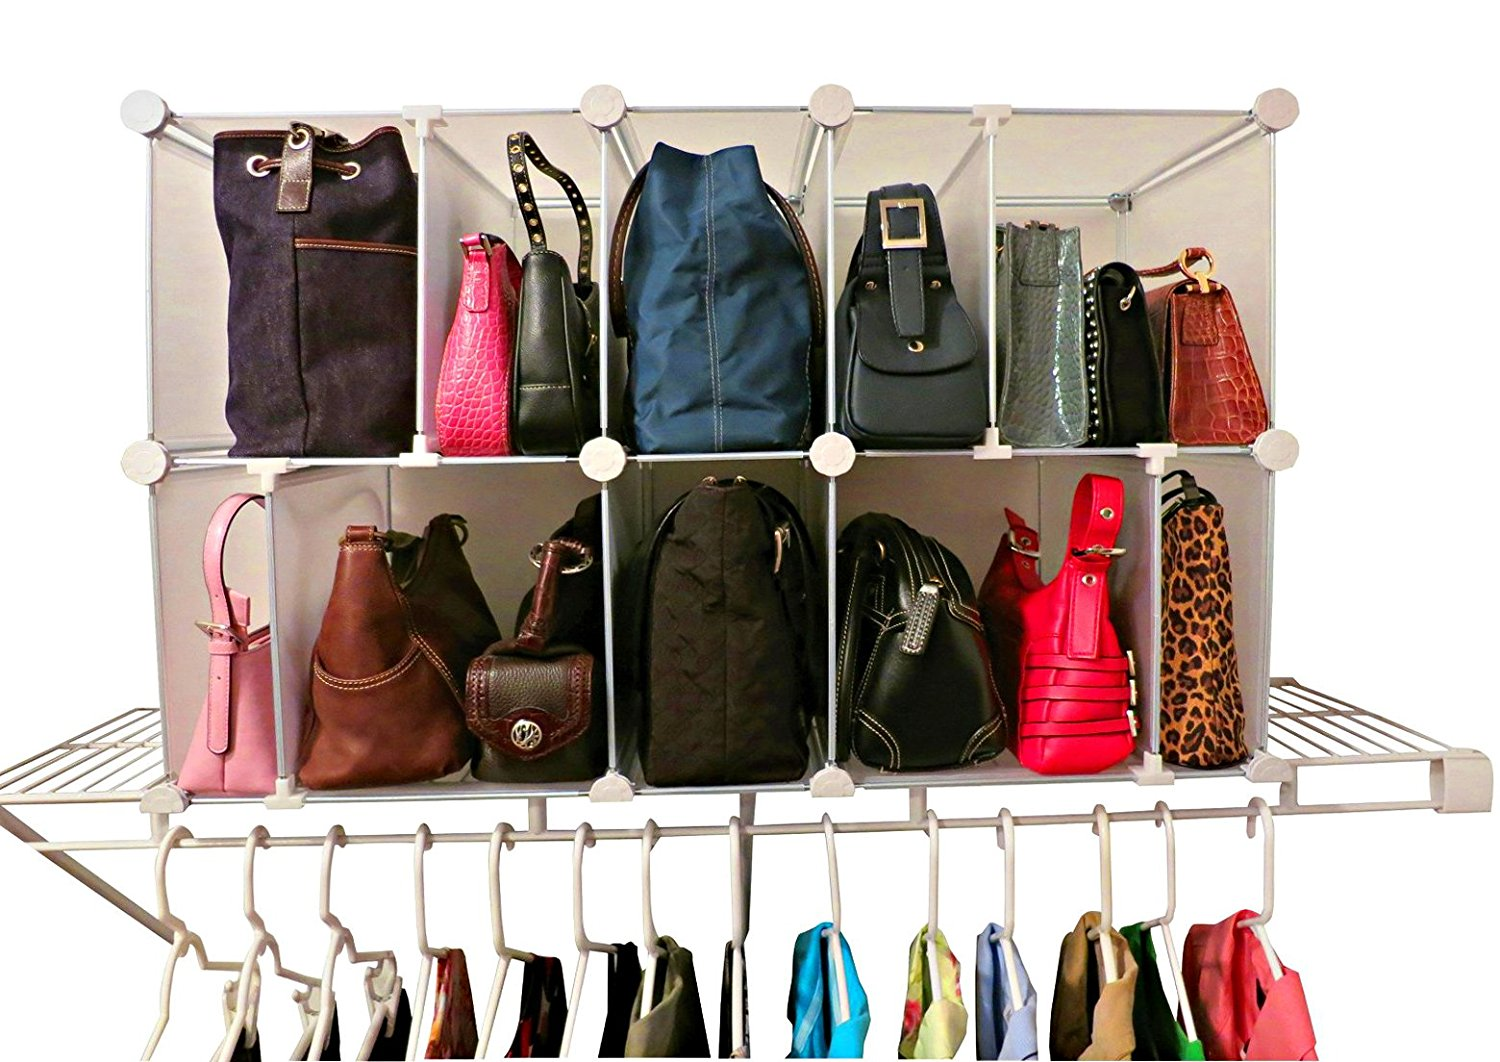 Cloth Storage Bags For Purses Handbag Organizer Ideas Purse  Organizer For The Closet Ideas For Storing Purses